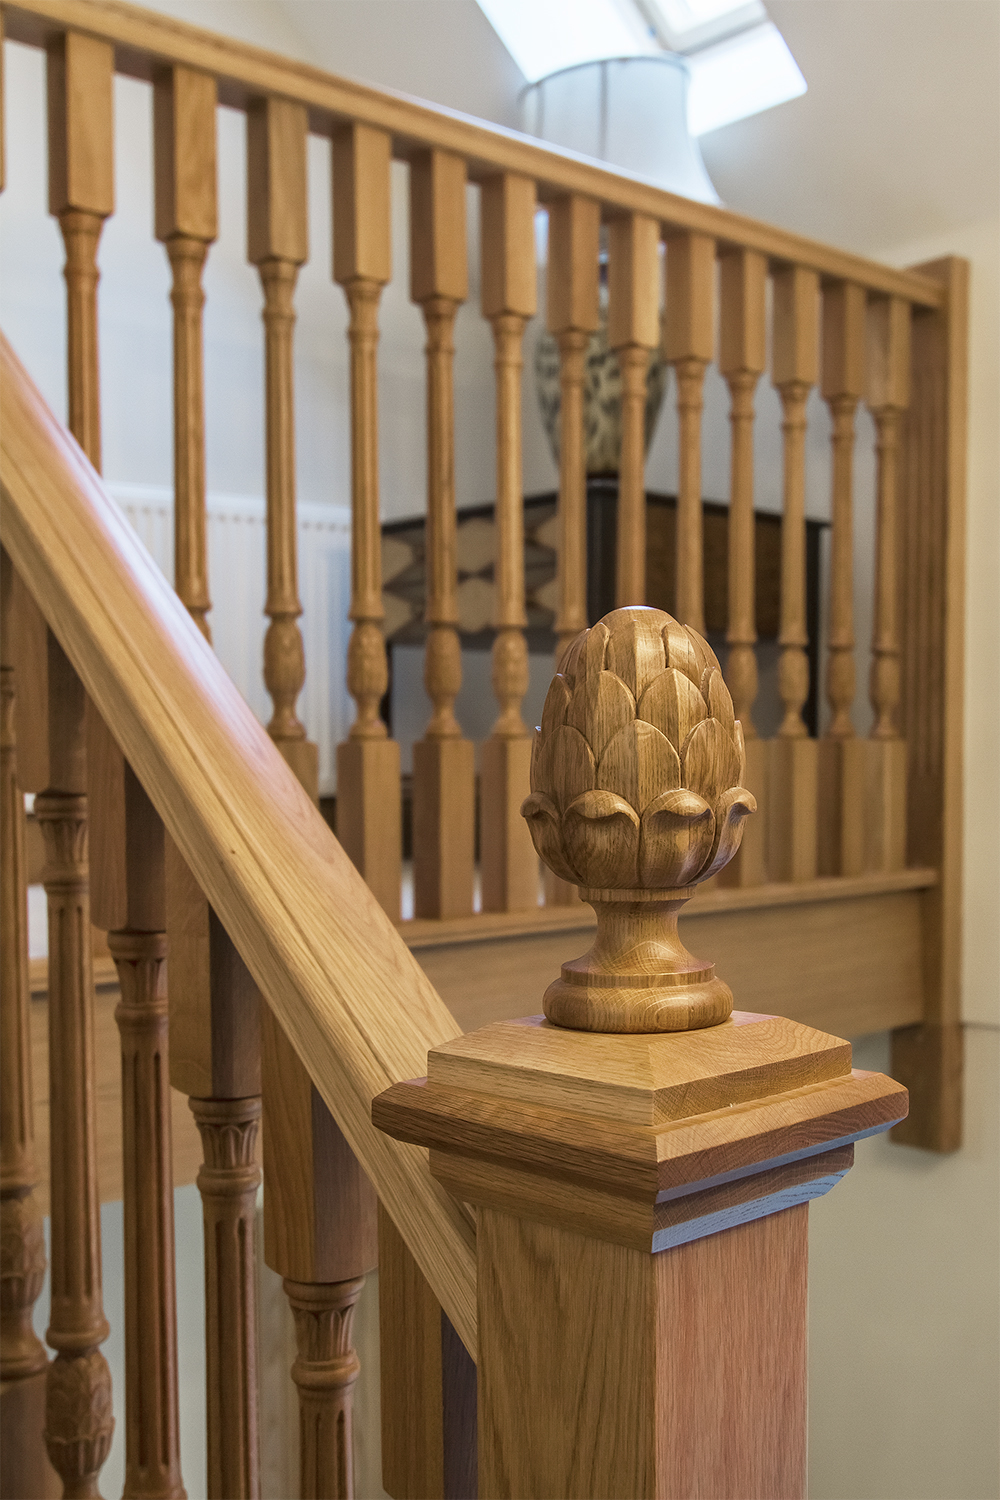 www.stockwell-ltd.co.uk   3 part cut stringer dogleg   oak stair   with feature curved   curtail tread  , fluted   newels, turned & fluted spindles and customer-  designed newel caps featuring   hand-carved   artichoke   caps  .